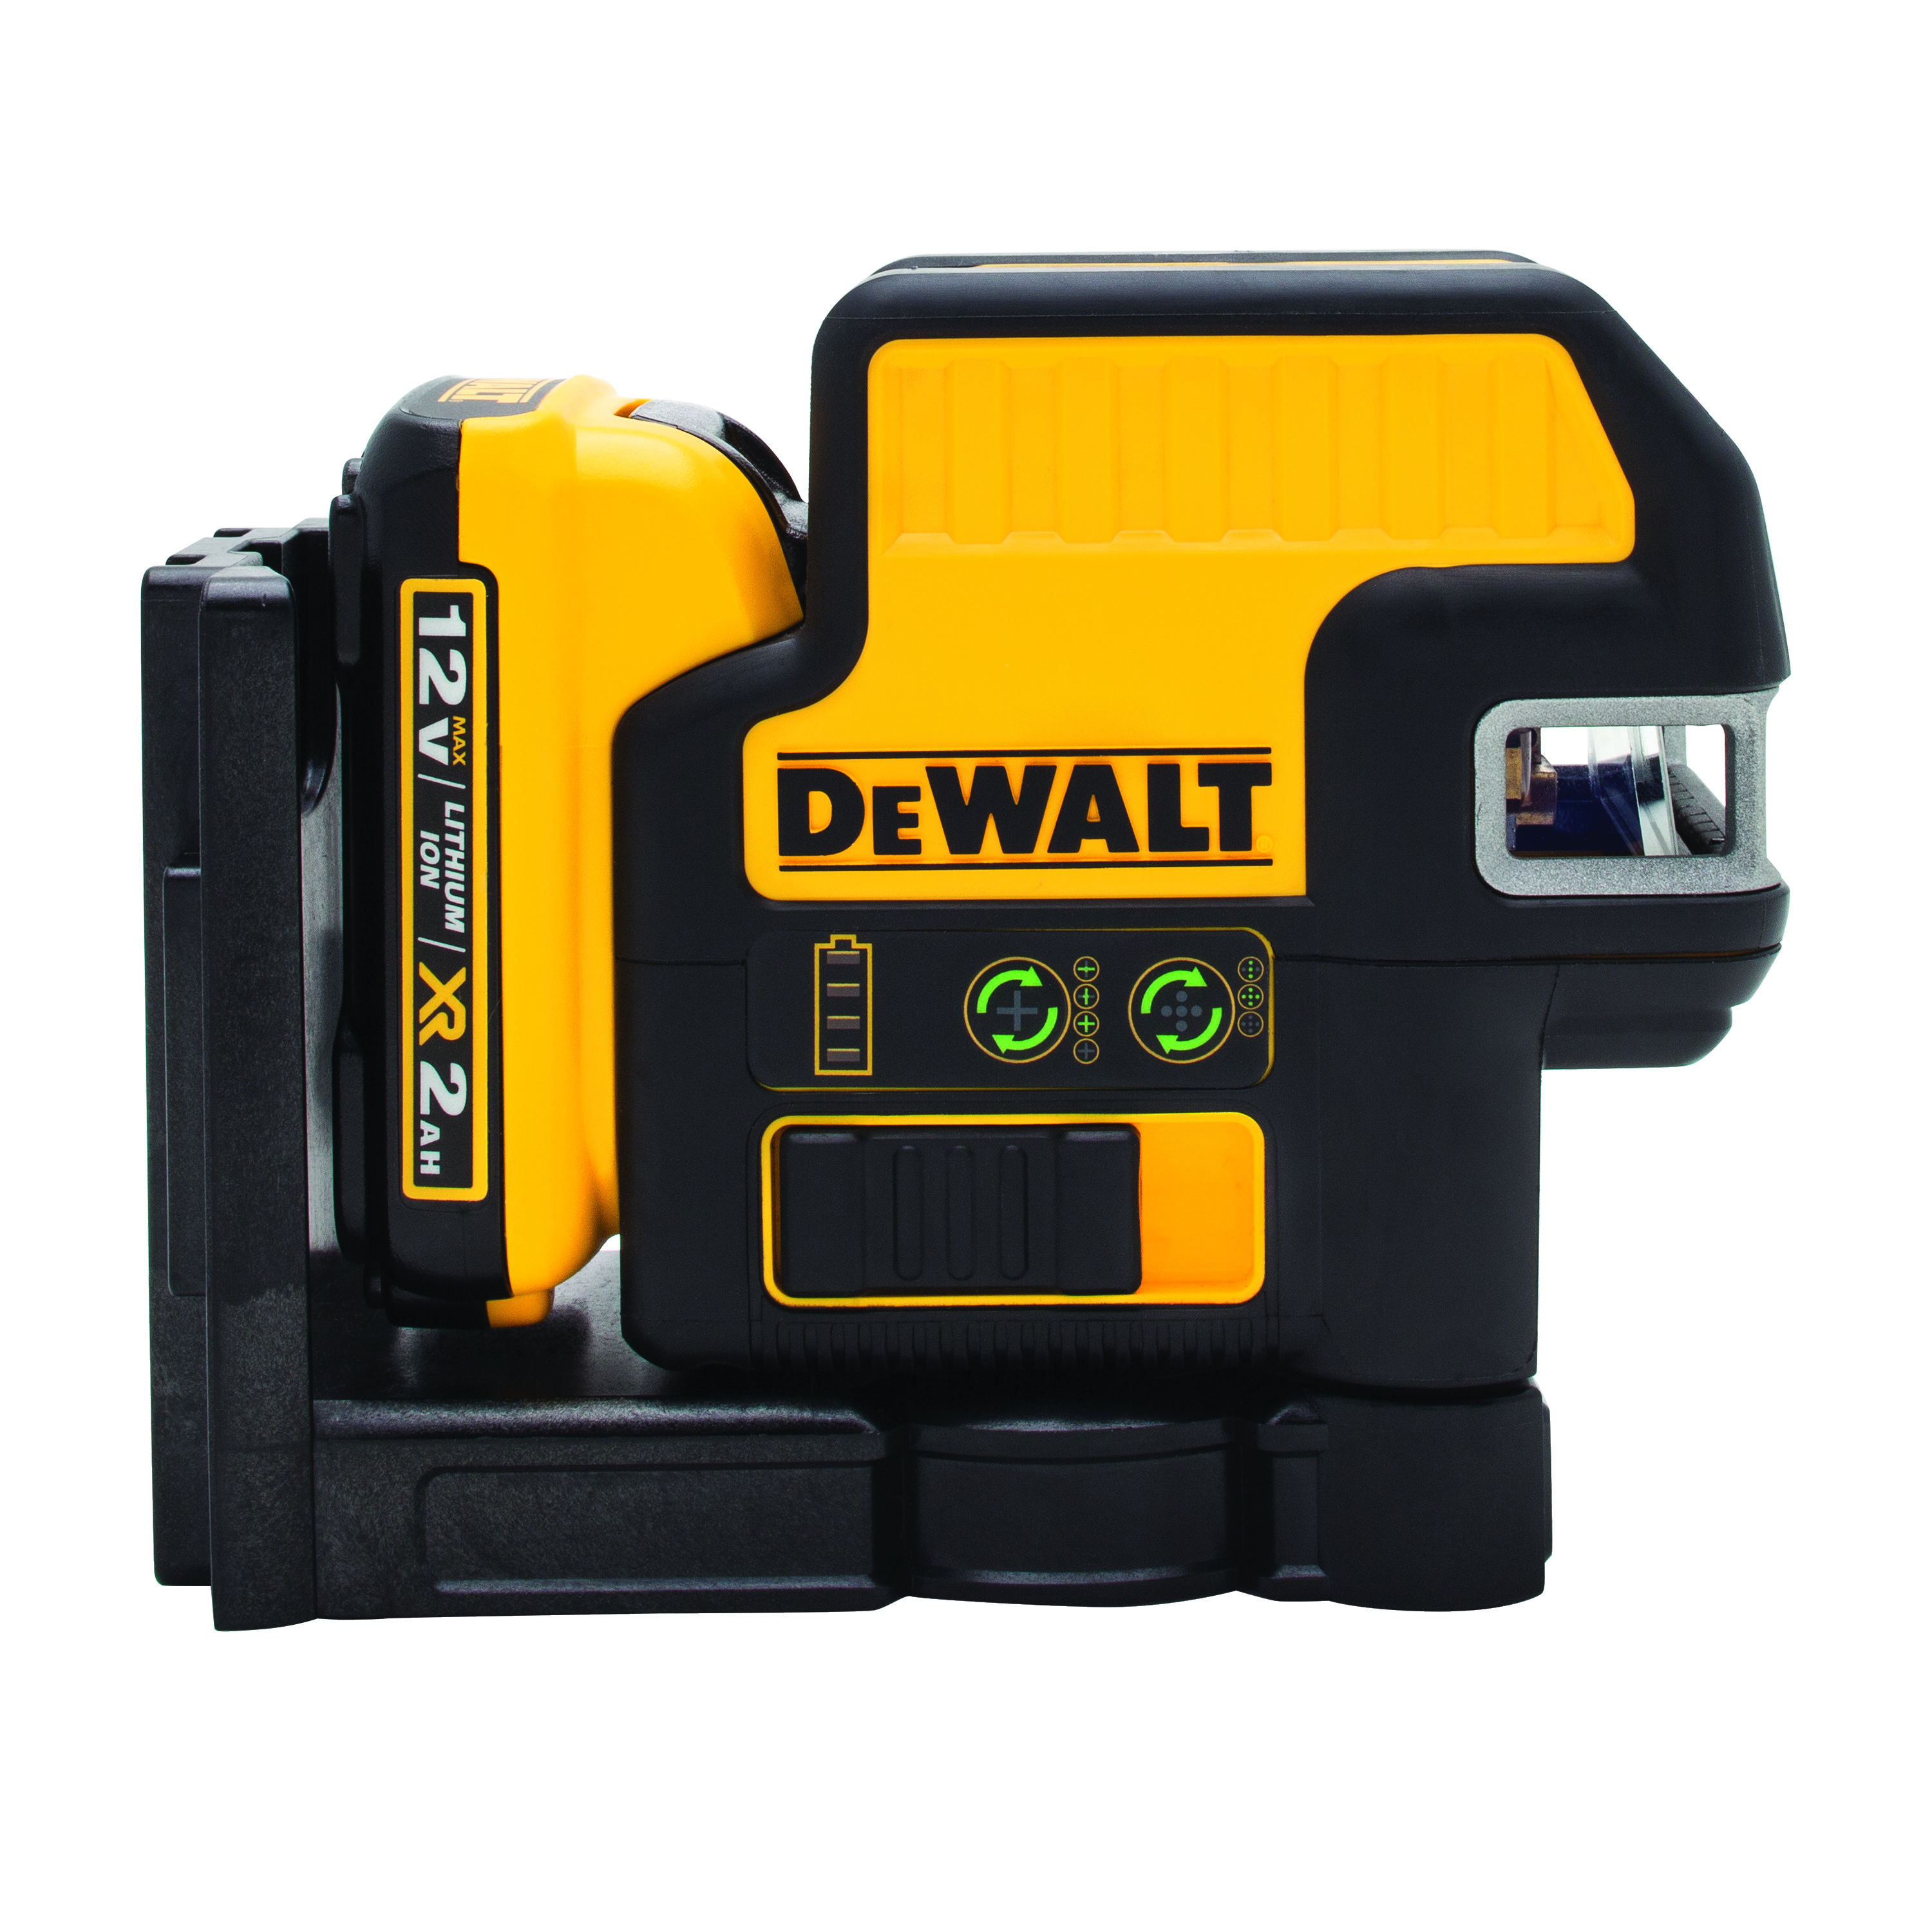 **Sale! Add to cart, save 15% more  - DeWALT® 12V MAX* DW0825LG Automatic Self-Leveling Horizontal/Vertical Projection Cross Line Laser, 165 ft Measuring, +/-1/8 in at 30 ft Accuracy, +/-5 deg Auto Leveling, 5 Beams, 12 V Lithium-Ion Battery